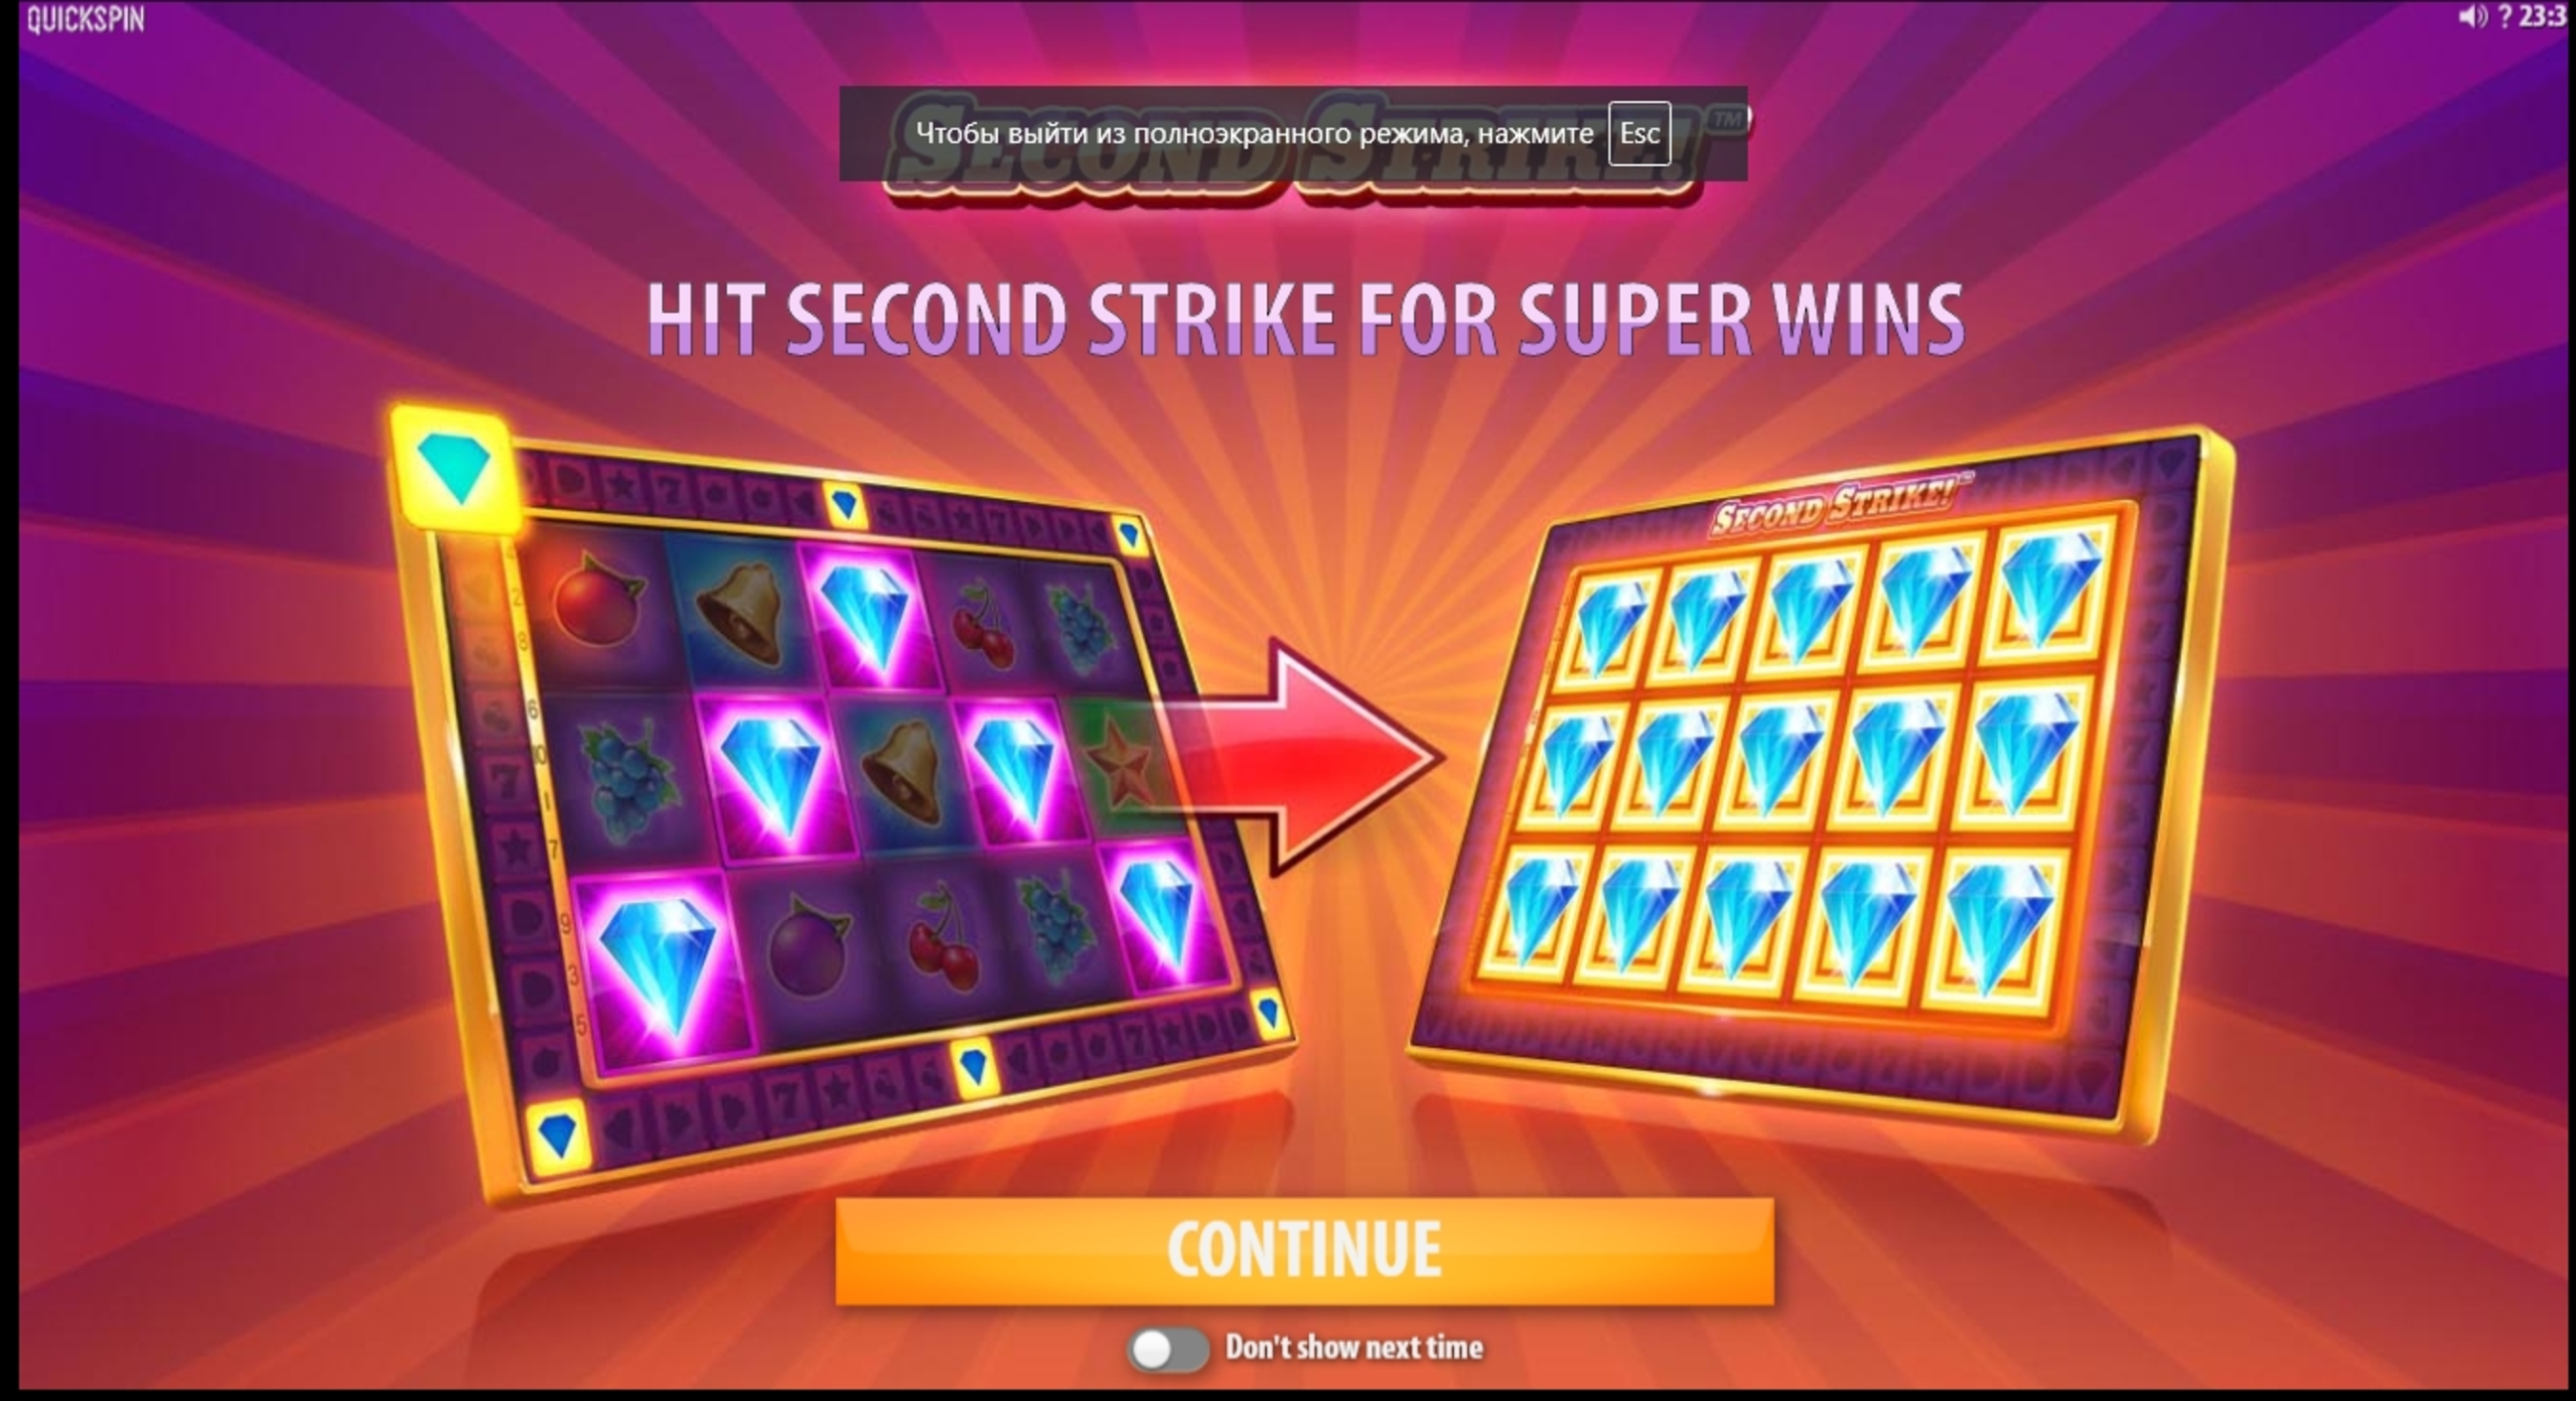 Play Second Strike Free Casino Slot Game by Quickspin